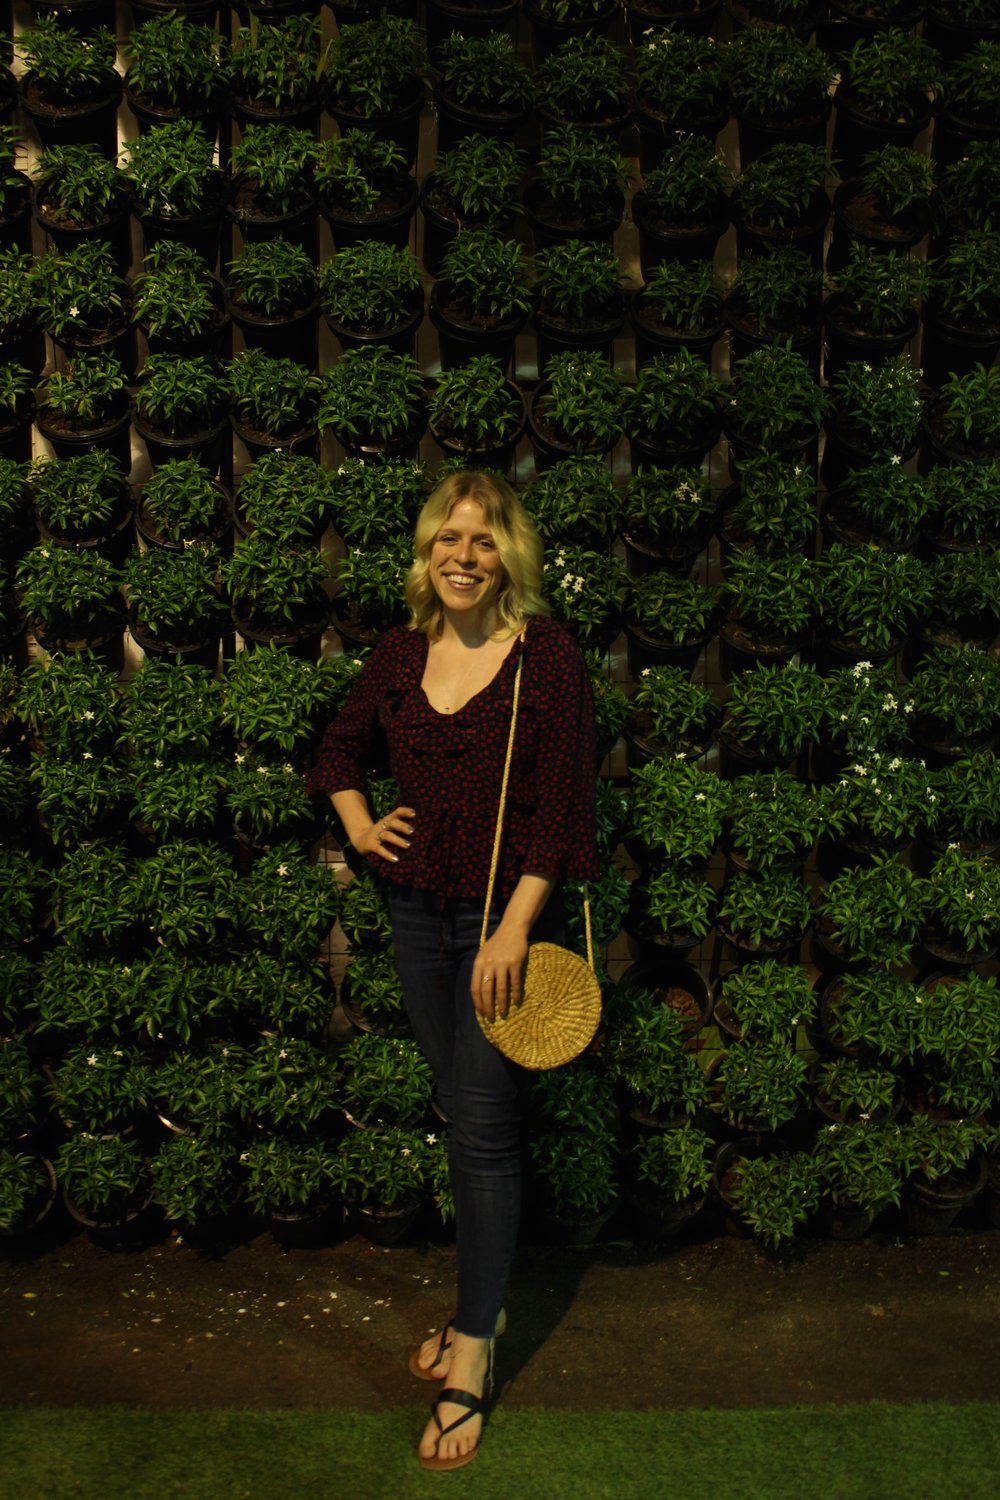 So many great & green lush walls to take photos in front of